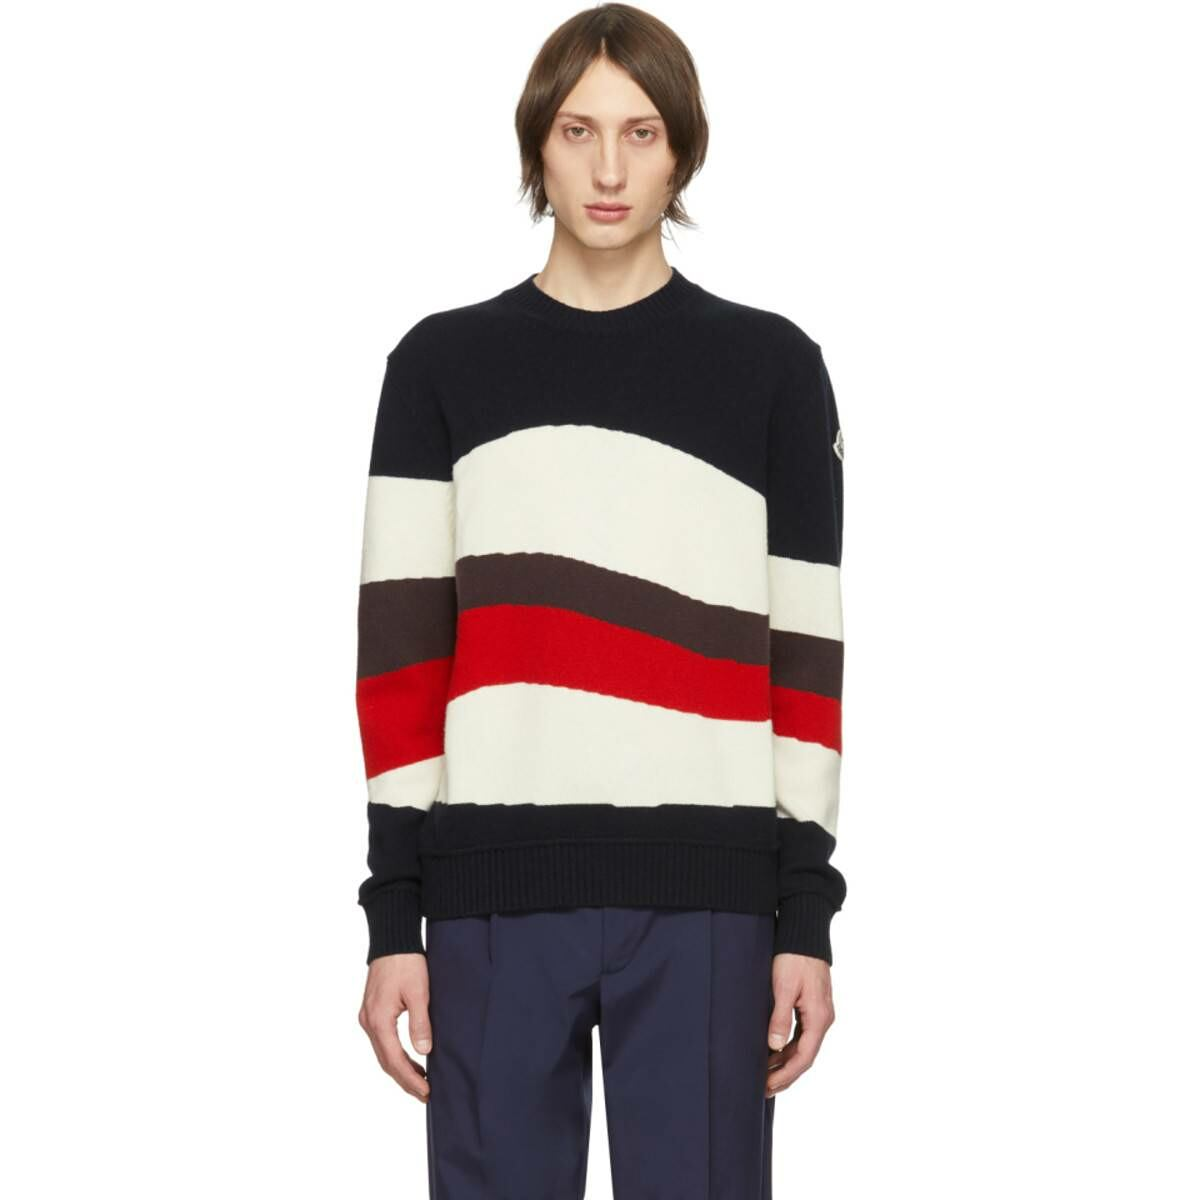 Moncler Tricolor Wool and Mohair Red Wave Sweater Ssense USA MEN Men FASHION Mens KNITWEAR